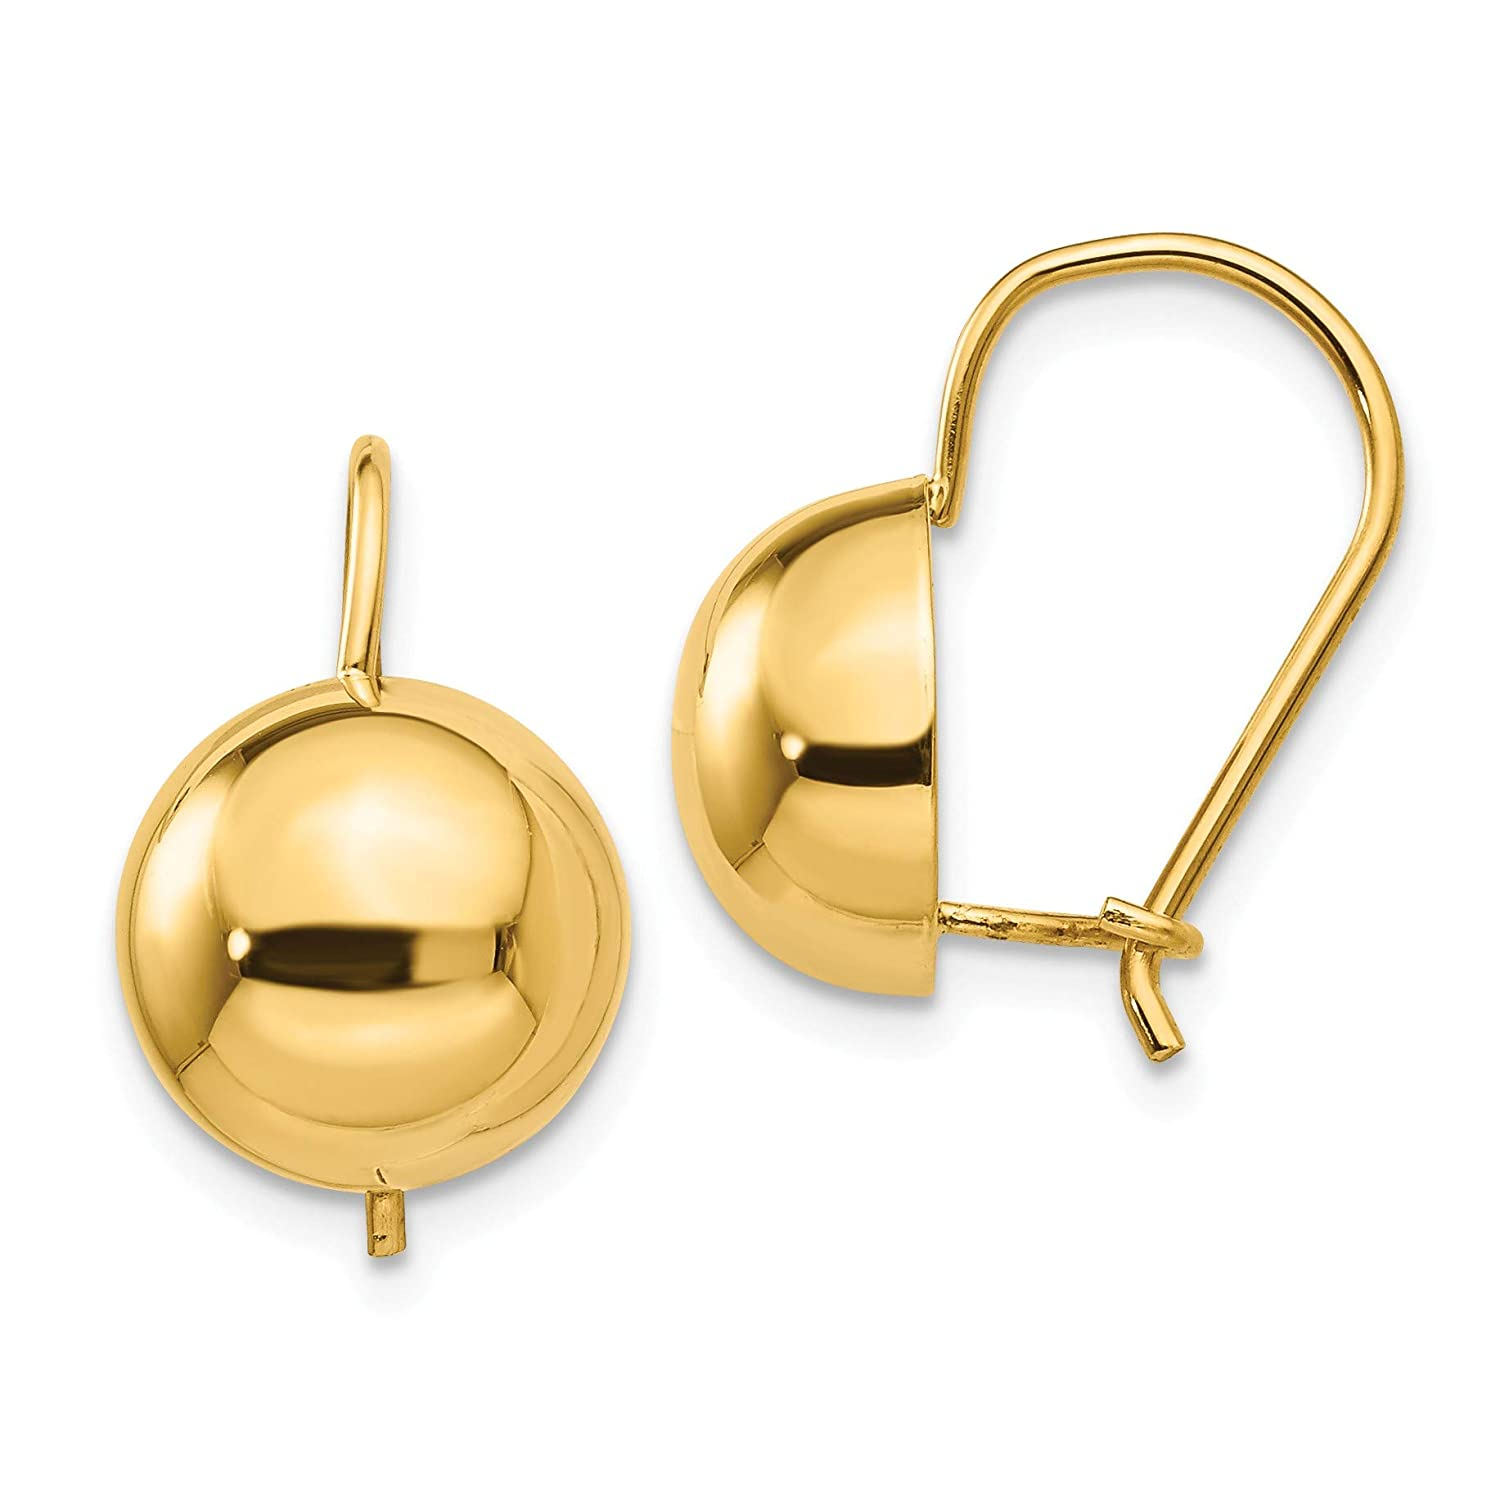 14k 10.50mm Hollow Half Ball Earrings in 14k Yellow Gold